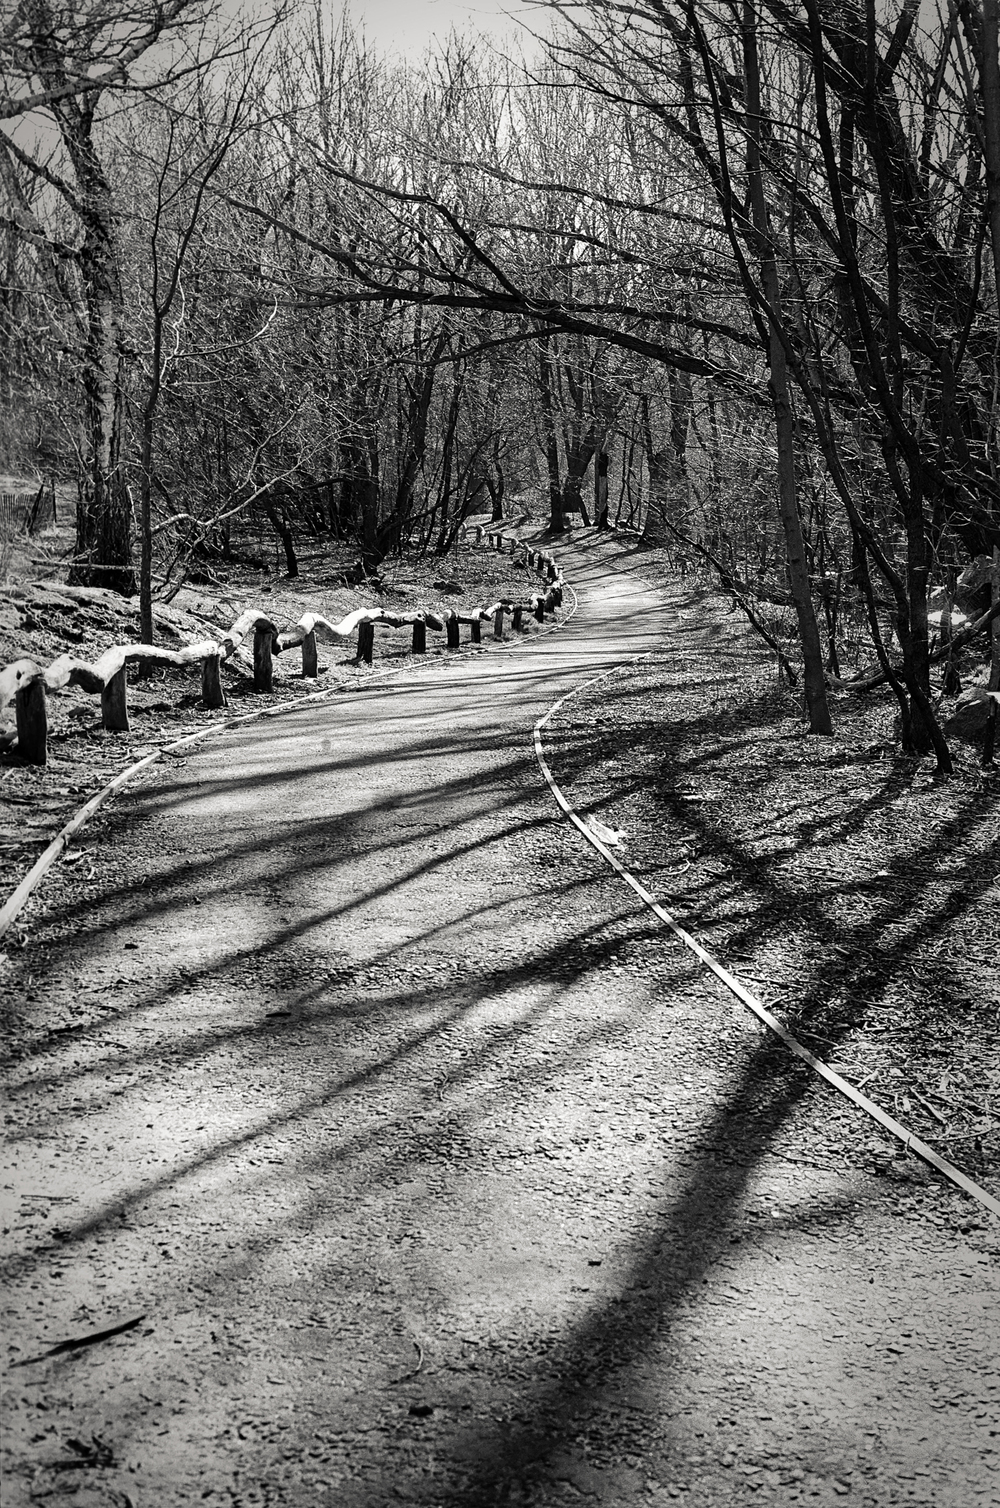 winding path, Central Park, NY 1997.